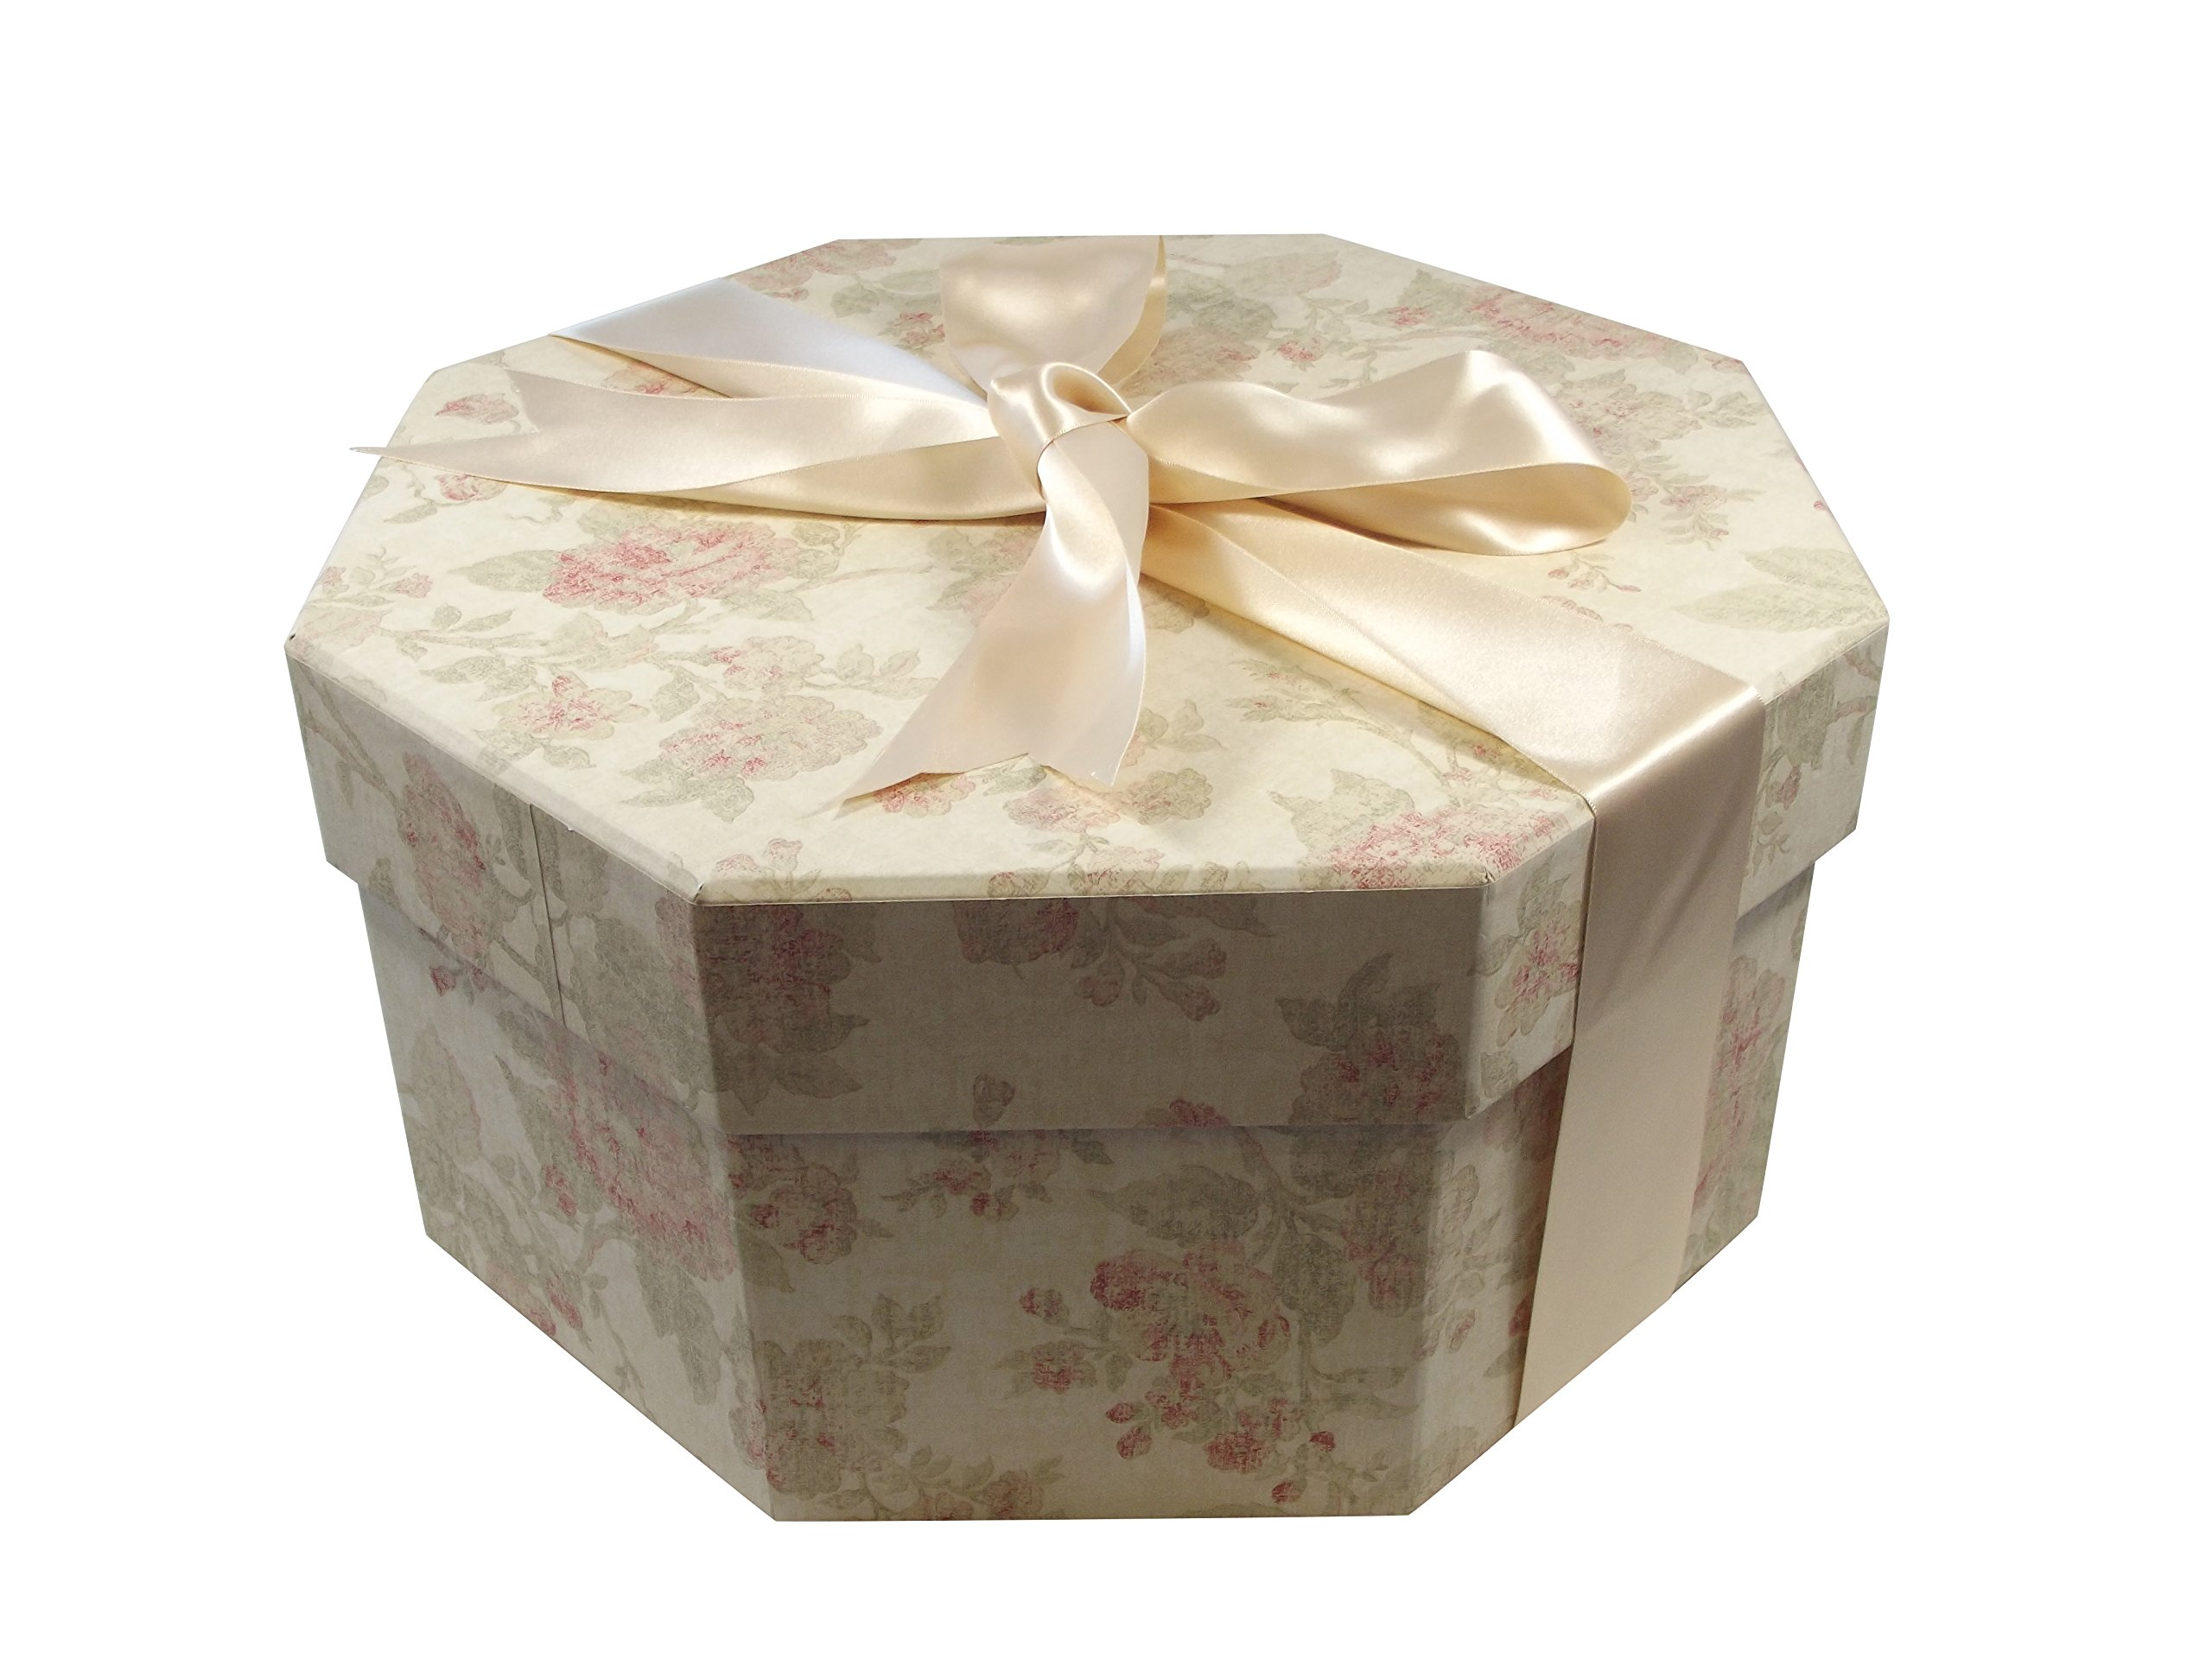 Foster-Stephens, inc Colorful Hat Box - Antique Pink (Medium: 15.75'' Diameter x 7.87'') by Foster-Stephens, inc